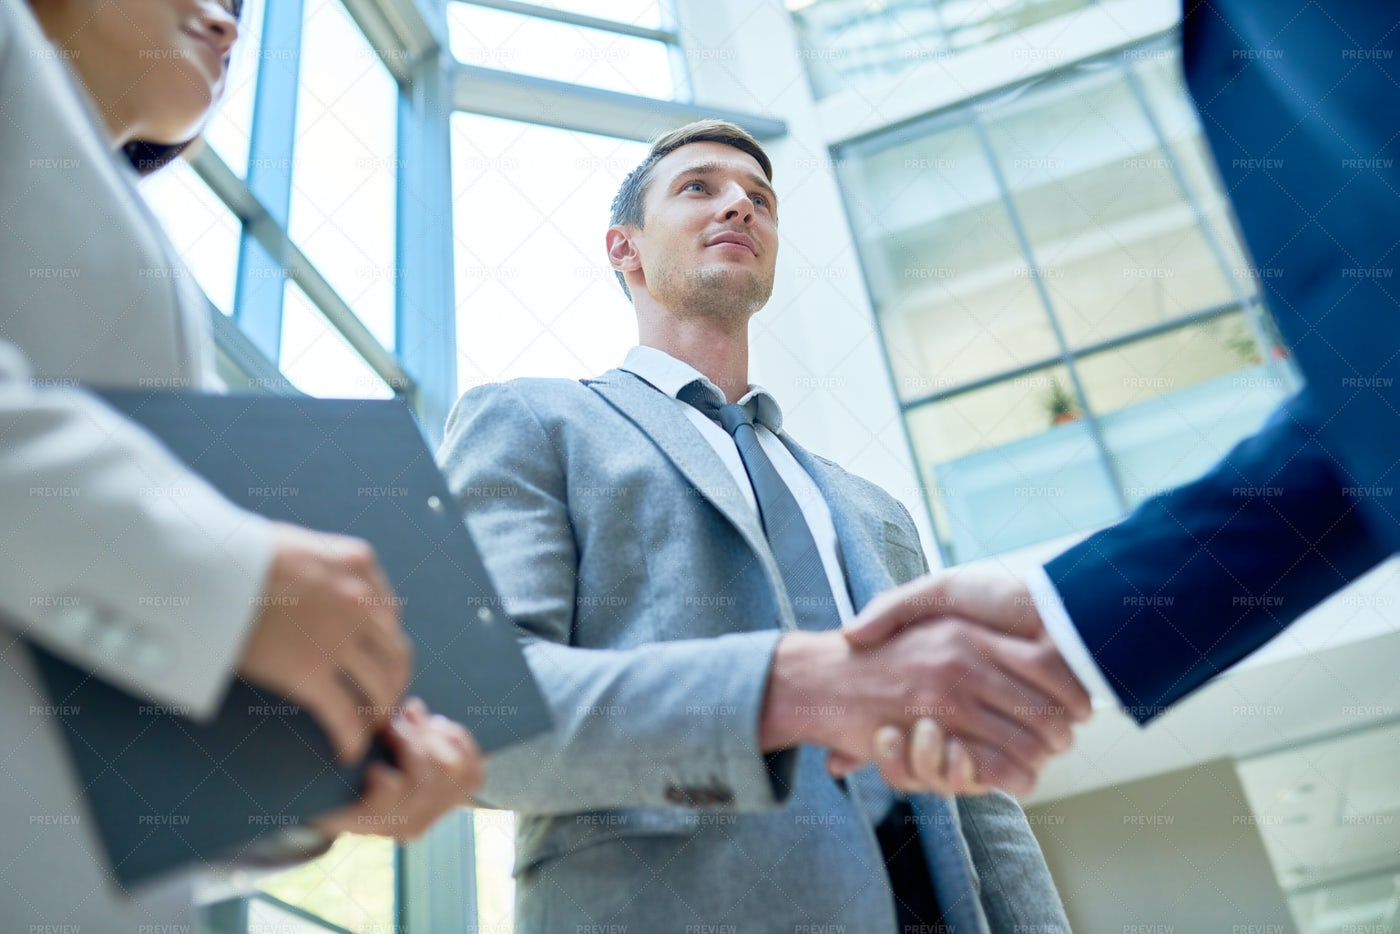 Firm Handshake Of Business Partners: Stock Photos